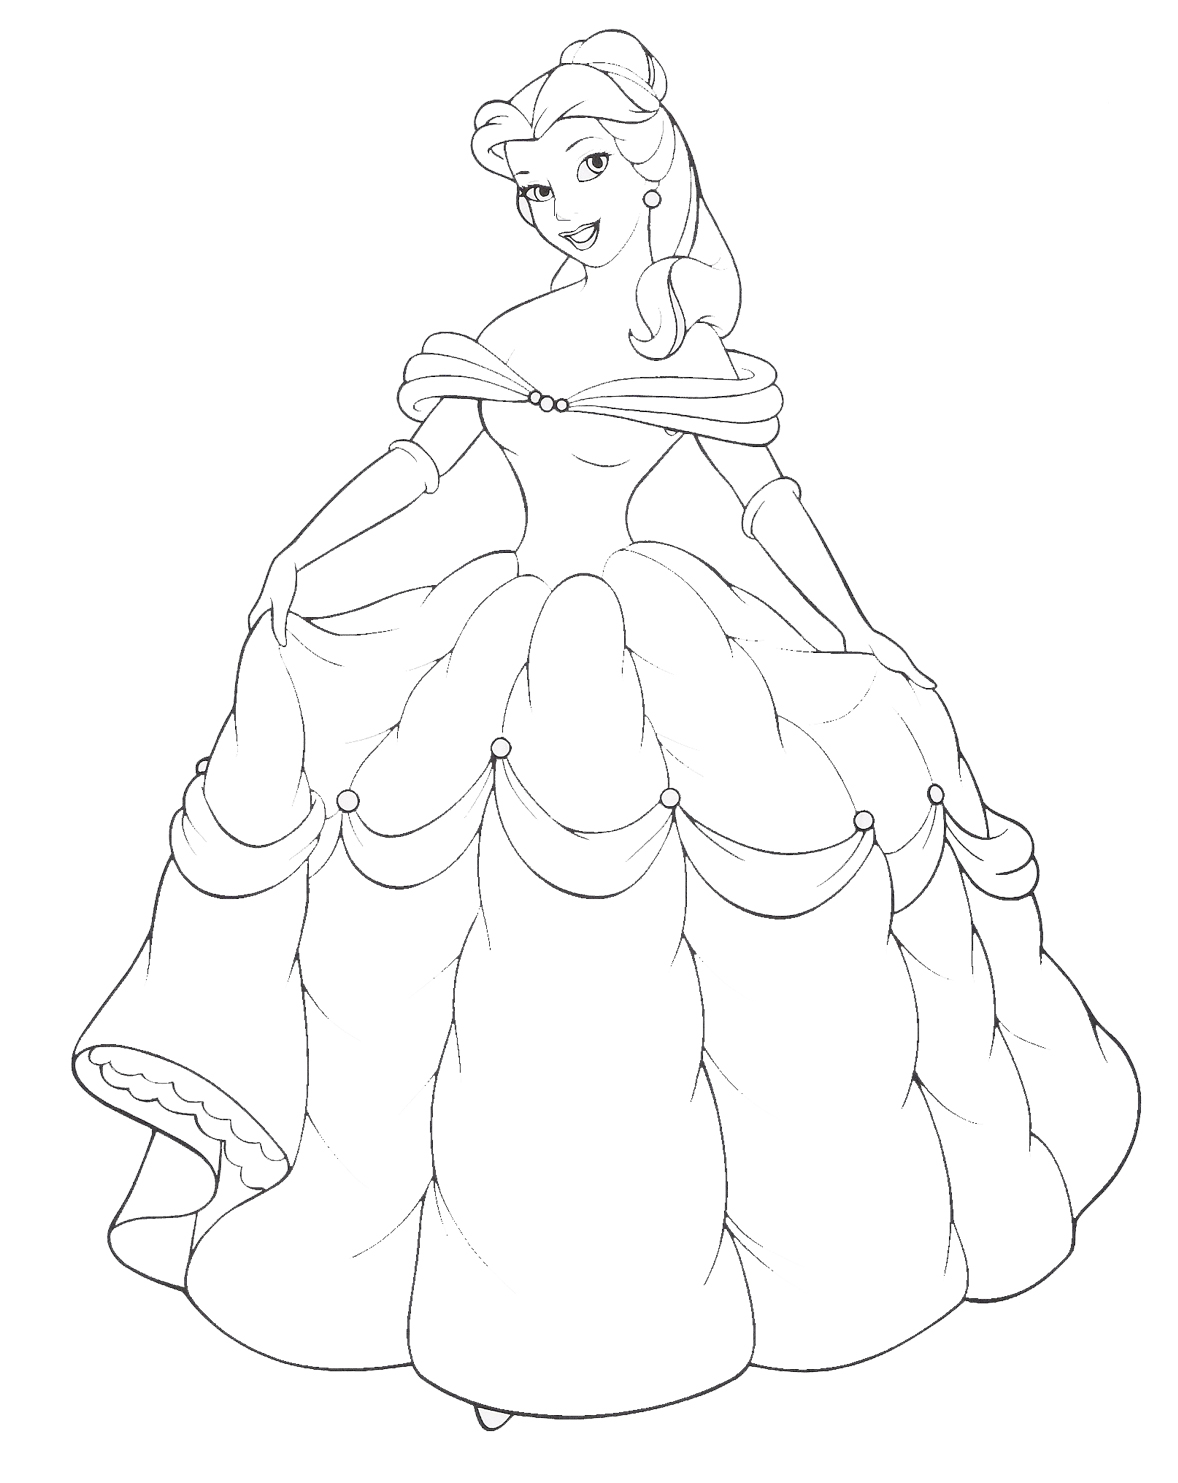 Disney Princess Belle And Her Gown Coloring Sheet Disney Princess Coloring Pages